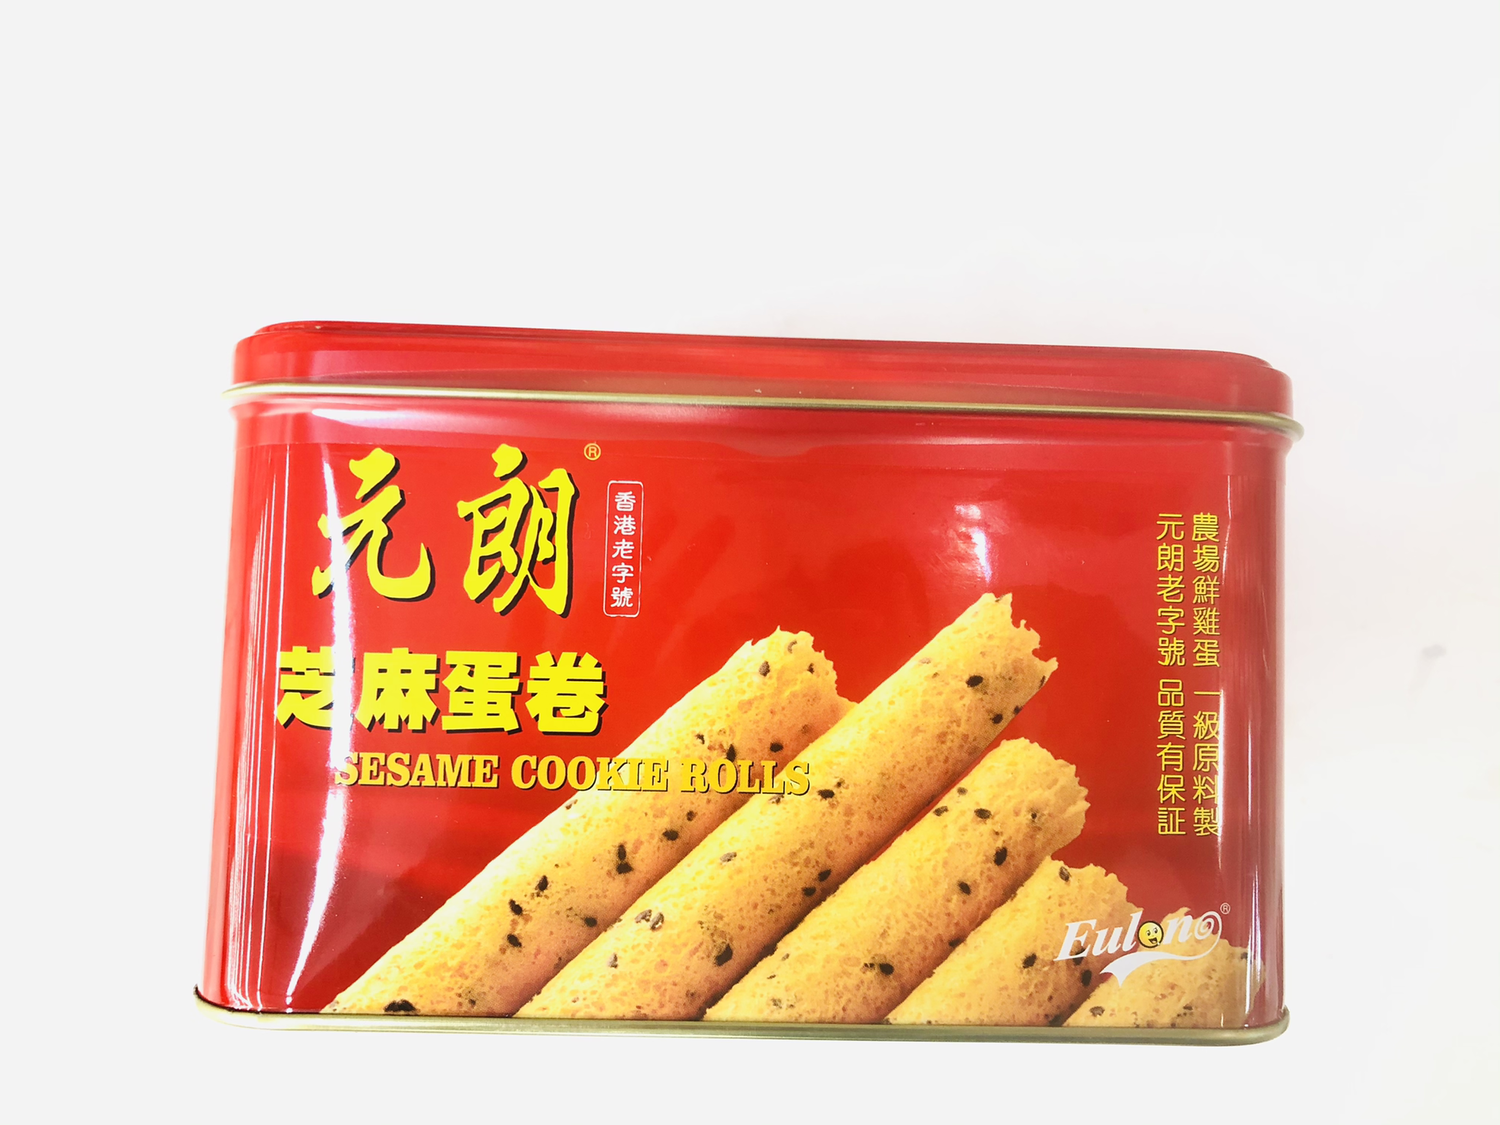 元朗 芝麻蛋卷 SESAME COOKIE ROLLS 454g(16oz)